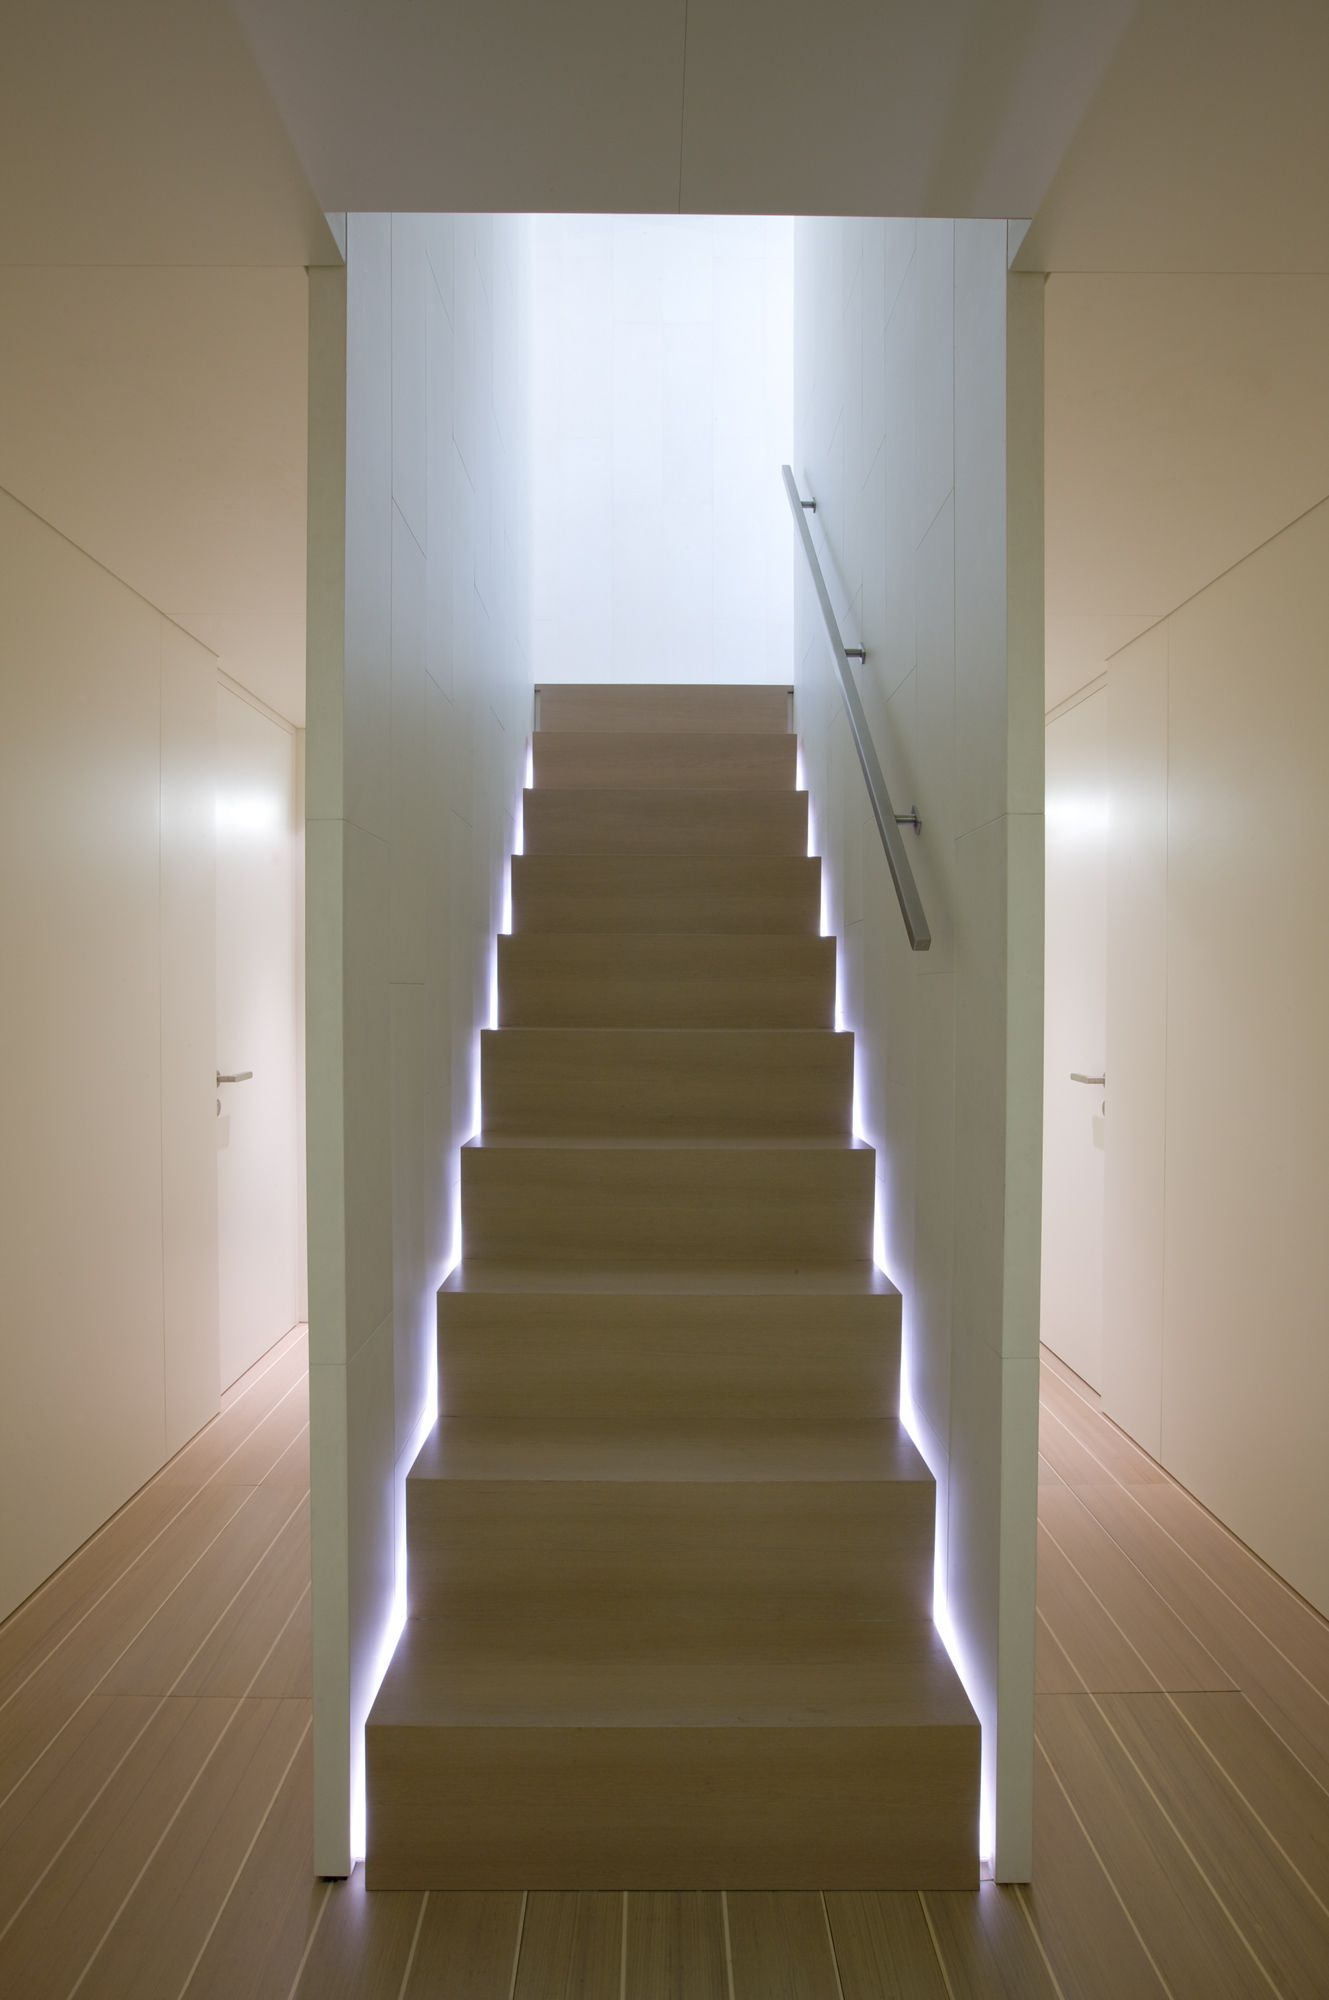 Basement Stair Ceiling Lighting: Stairway Lighting, Interior